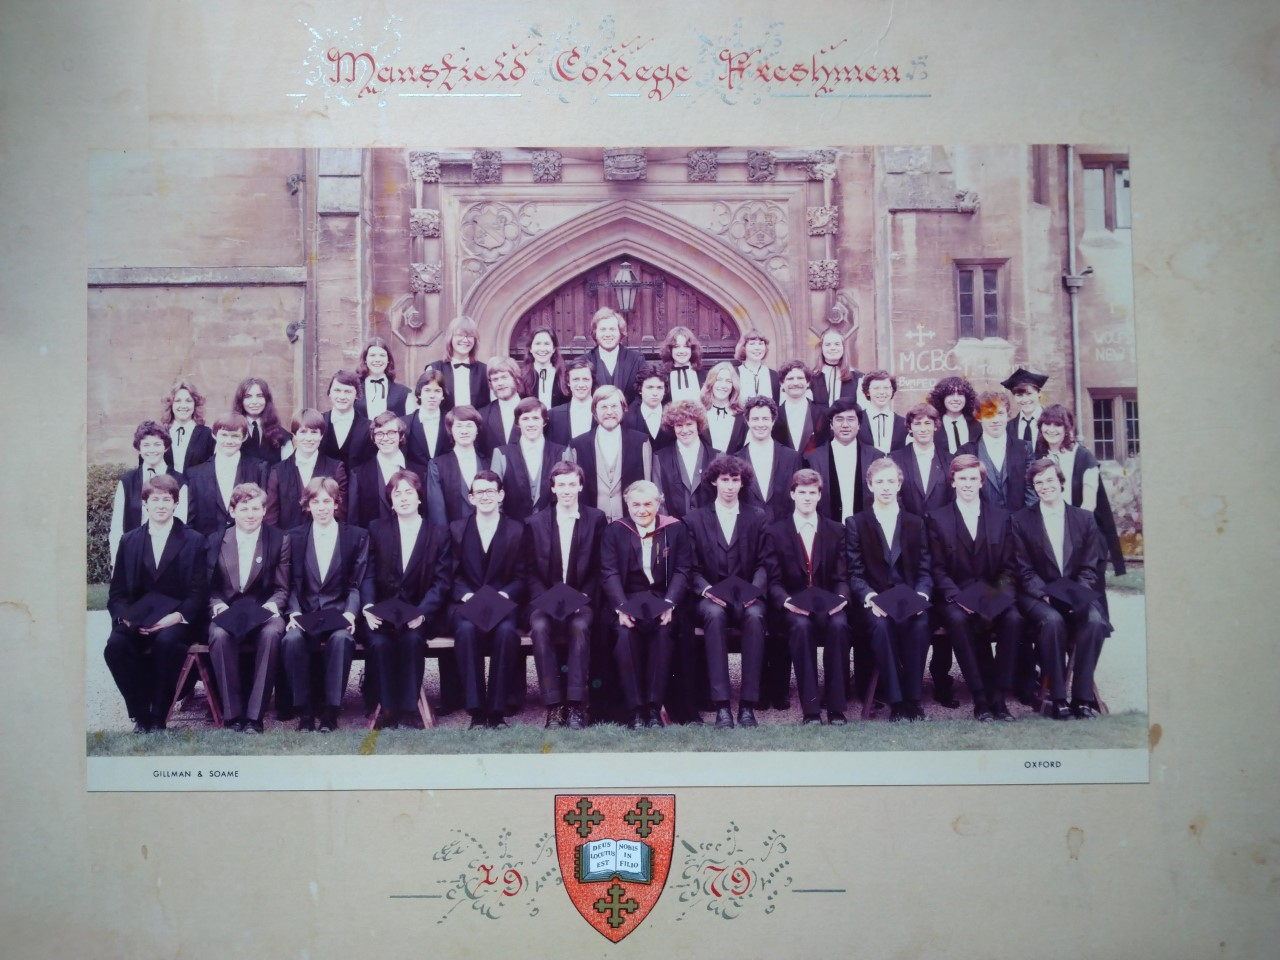 "A year group matriculation photograph from 1979.  It is a colour photograph. The students wear academic dress. There are a small number of women in the group. The photo has a white frame around it: at the top it says ""Mansfield College Freshmen"" and at the bottom there is the Mansfield shield and the date ""1979""."